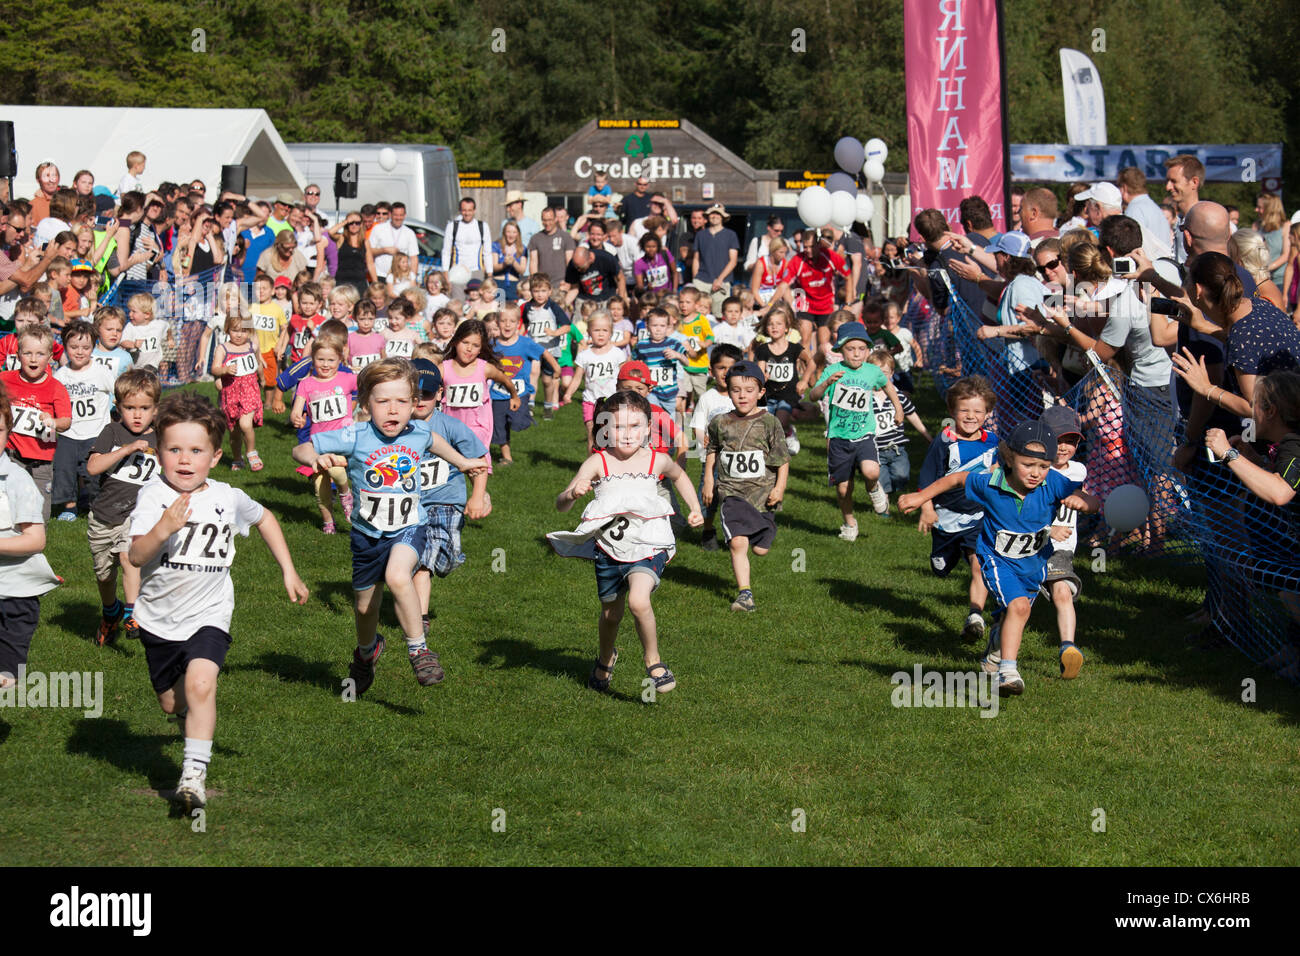 pre school children taking part in a 60m dash race with parents watching at Alice Holt Forest - Stock Image